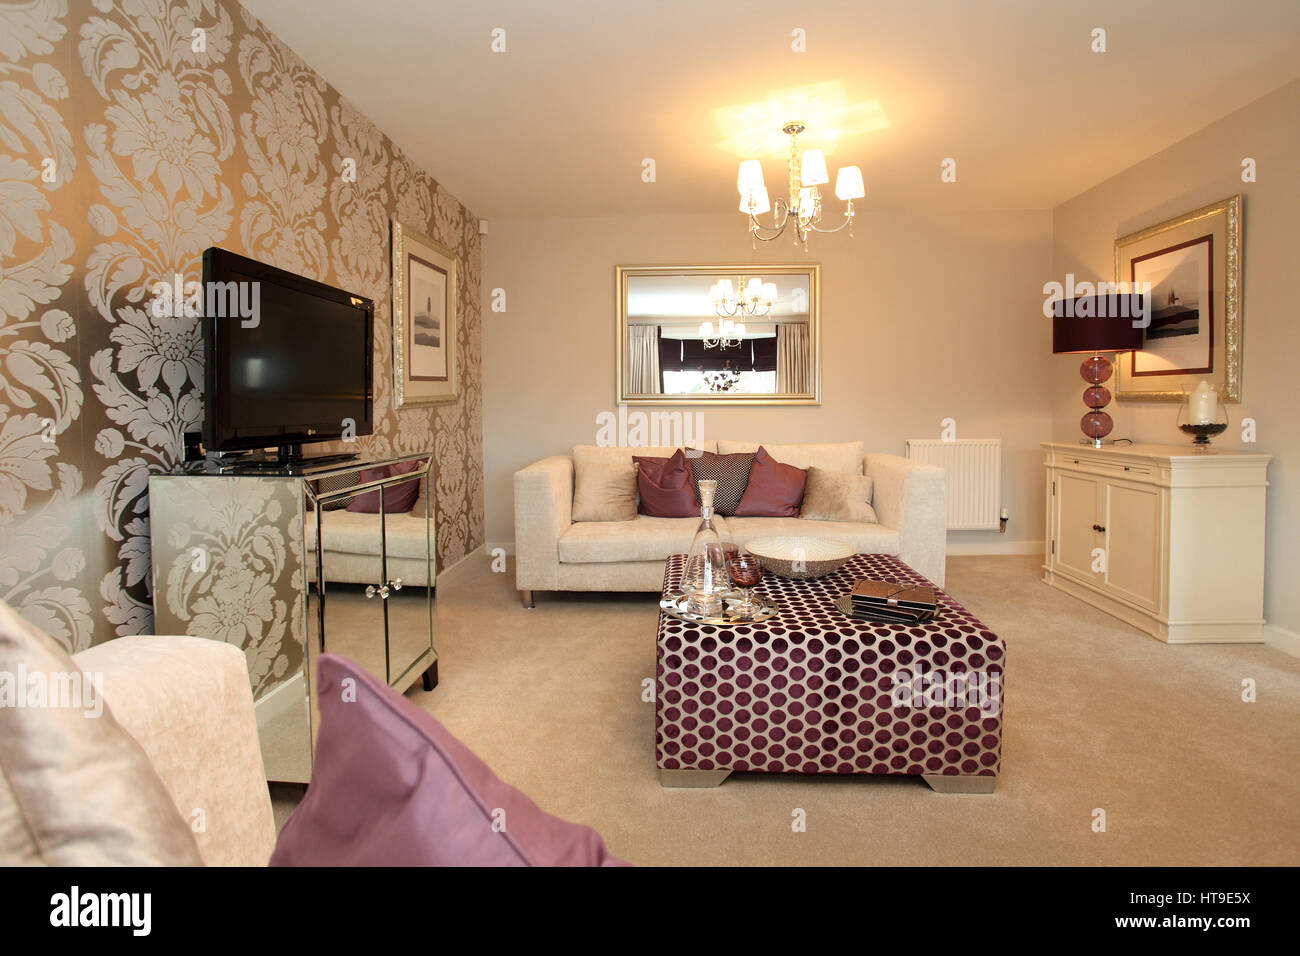 Home interior. Living room, lounge, decorated in pink and cream colours, silver reflective wallpaper with leaf pattern - Stock Image